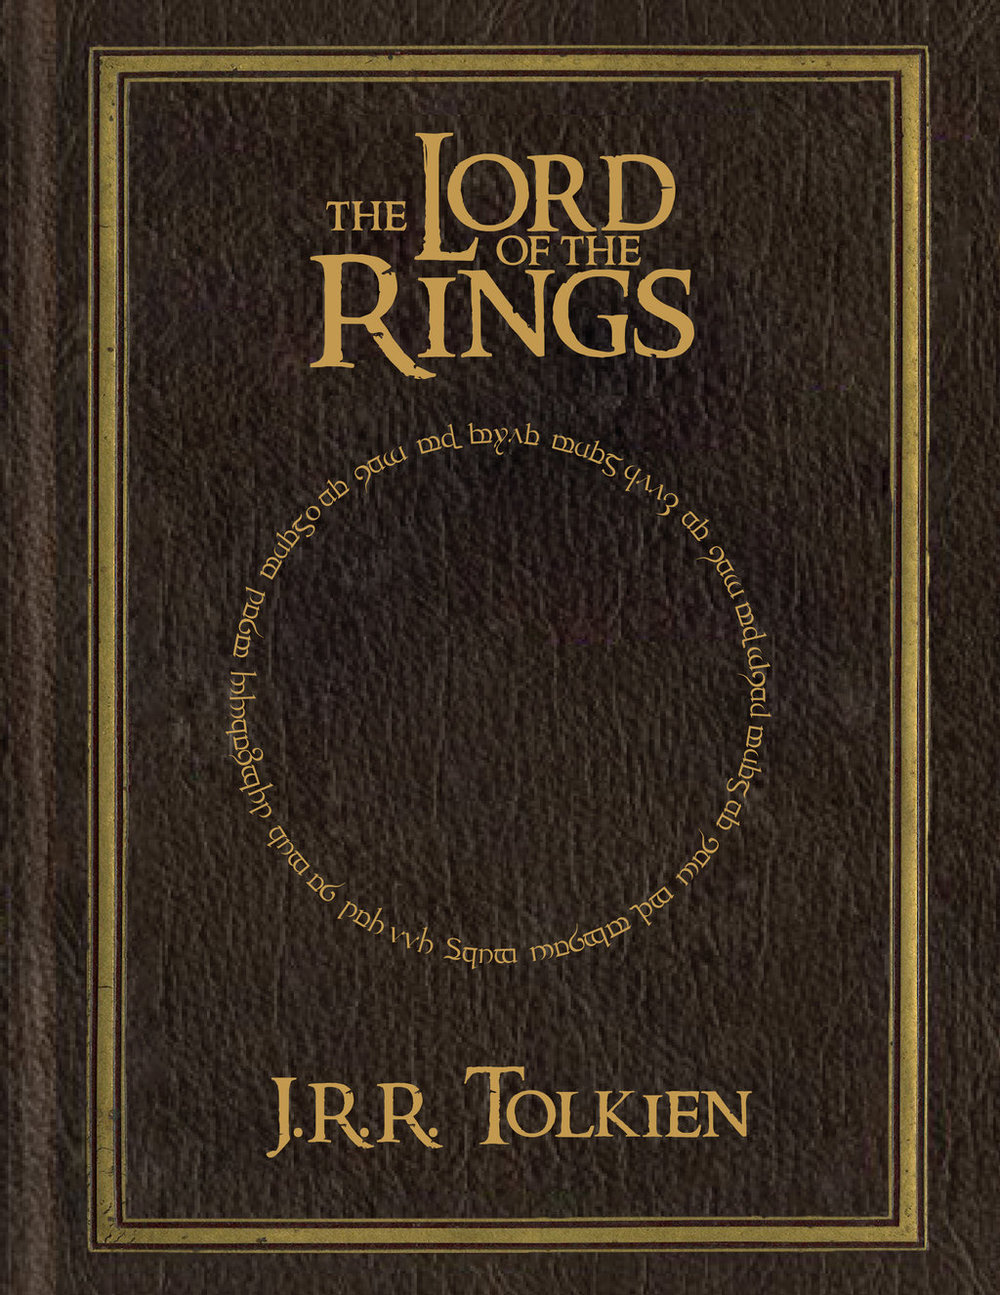 lord_of_the_rings_book_cover_by_mrstingyjr-d5vwgct.jpg